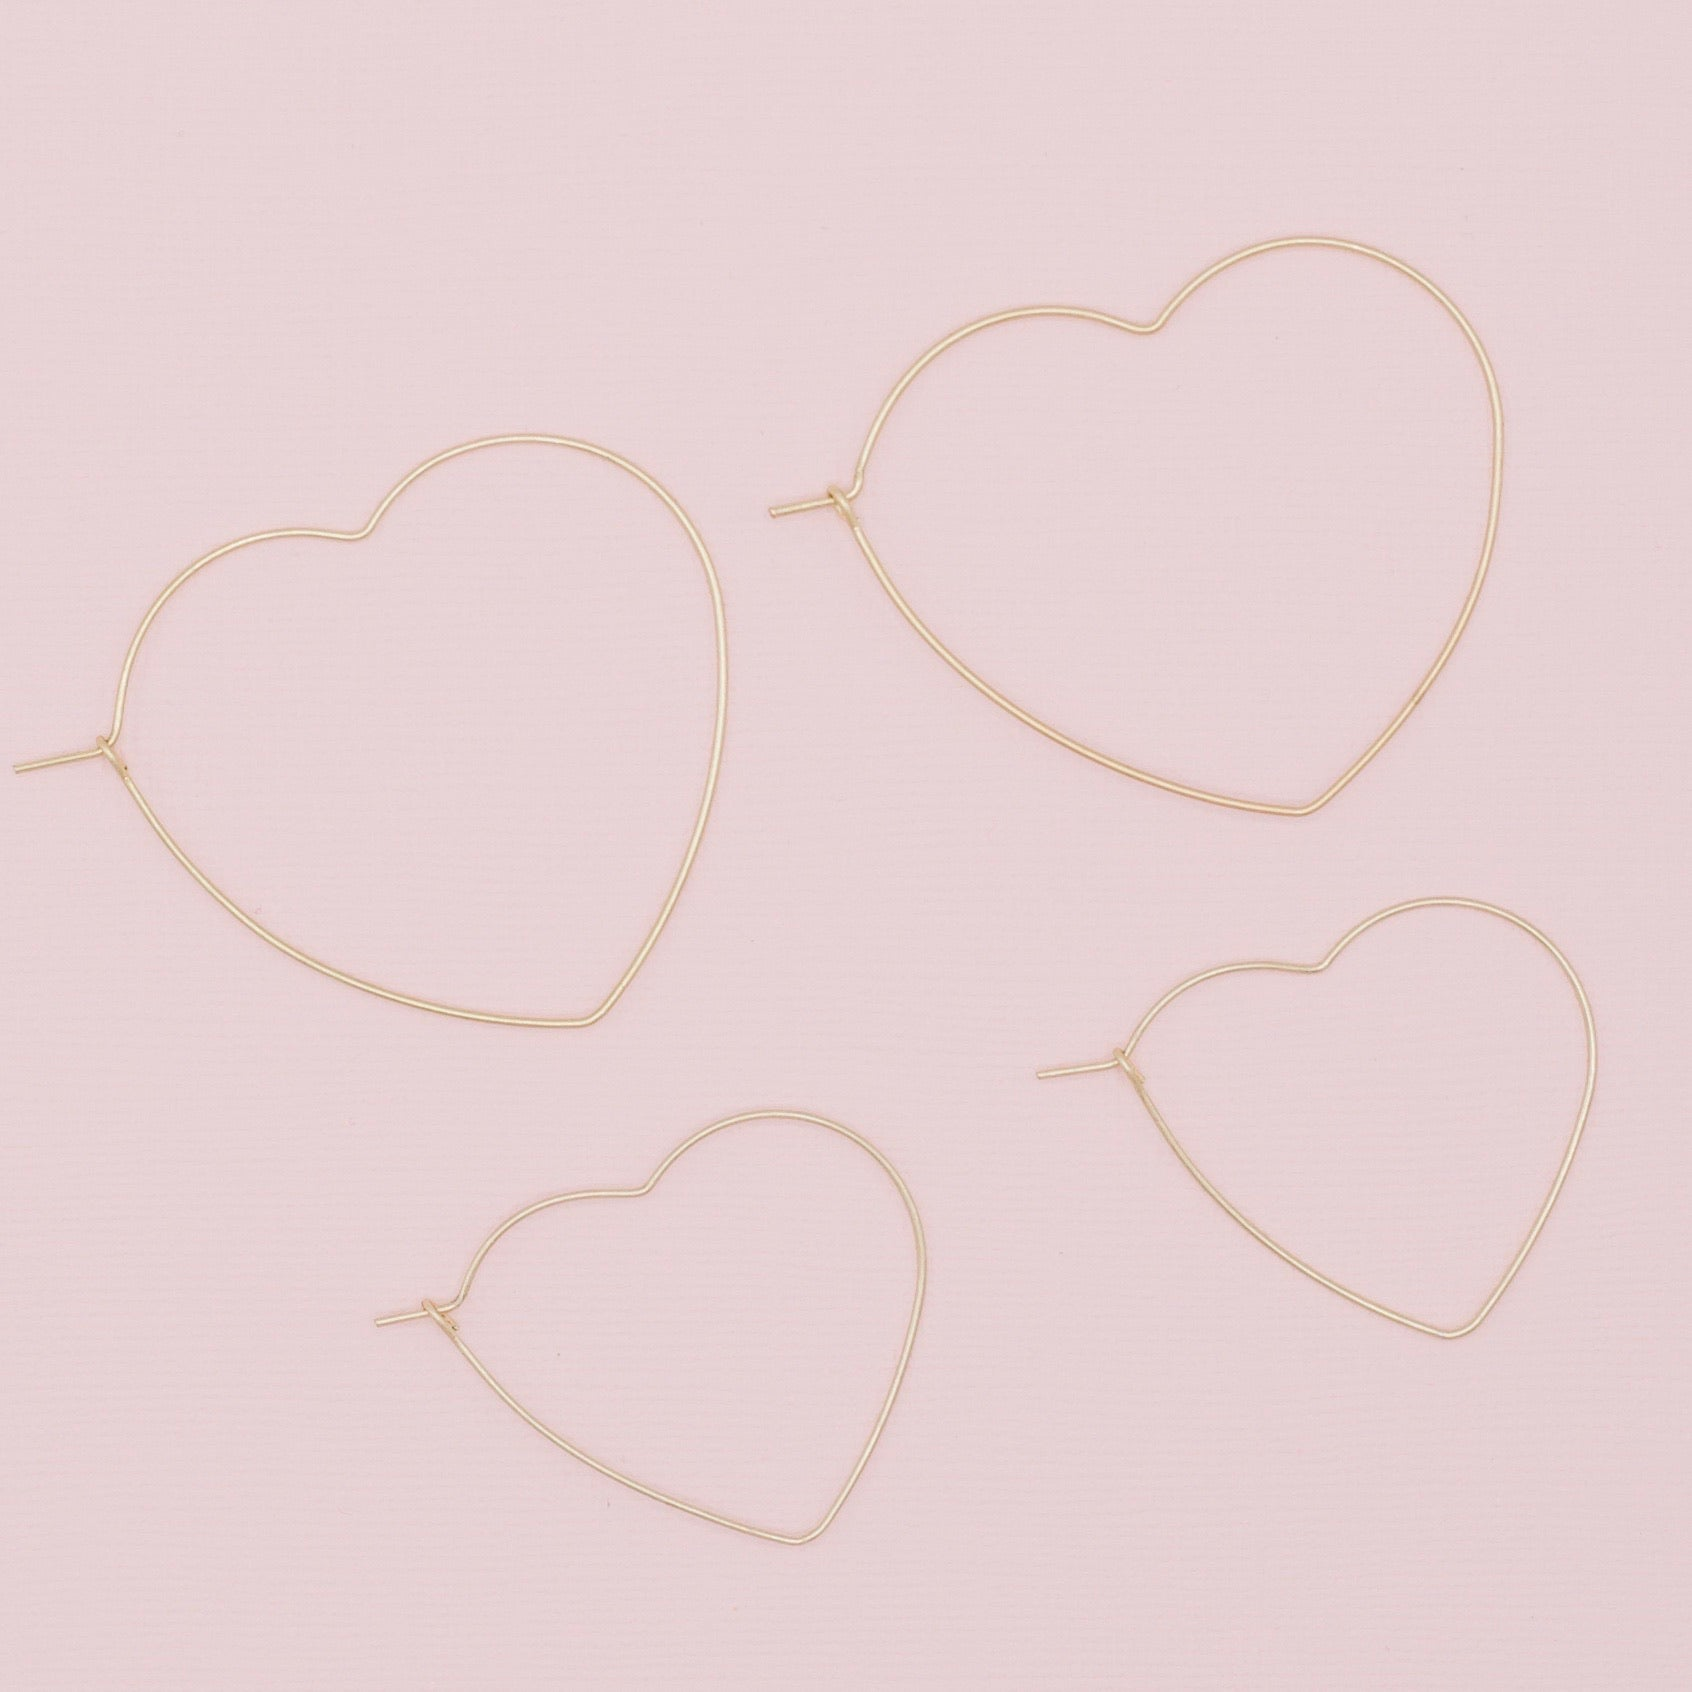 "Be Still My Heart Hoop Earrings-Be Still My Heart Hoop Earrings. One for you and one for the little one. Or give one to your bestie! Dainty heart shaped earrings that are lightweight and speak only of love. Secure fit promises carefree wear! Lightweight Gold wire Kidney shaped hooks Sizing - One size | Small 1 1/4"" Diameter, Large 1 3/4"" Diameter. -East Coast She, South Carolina"